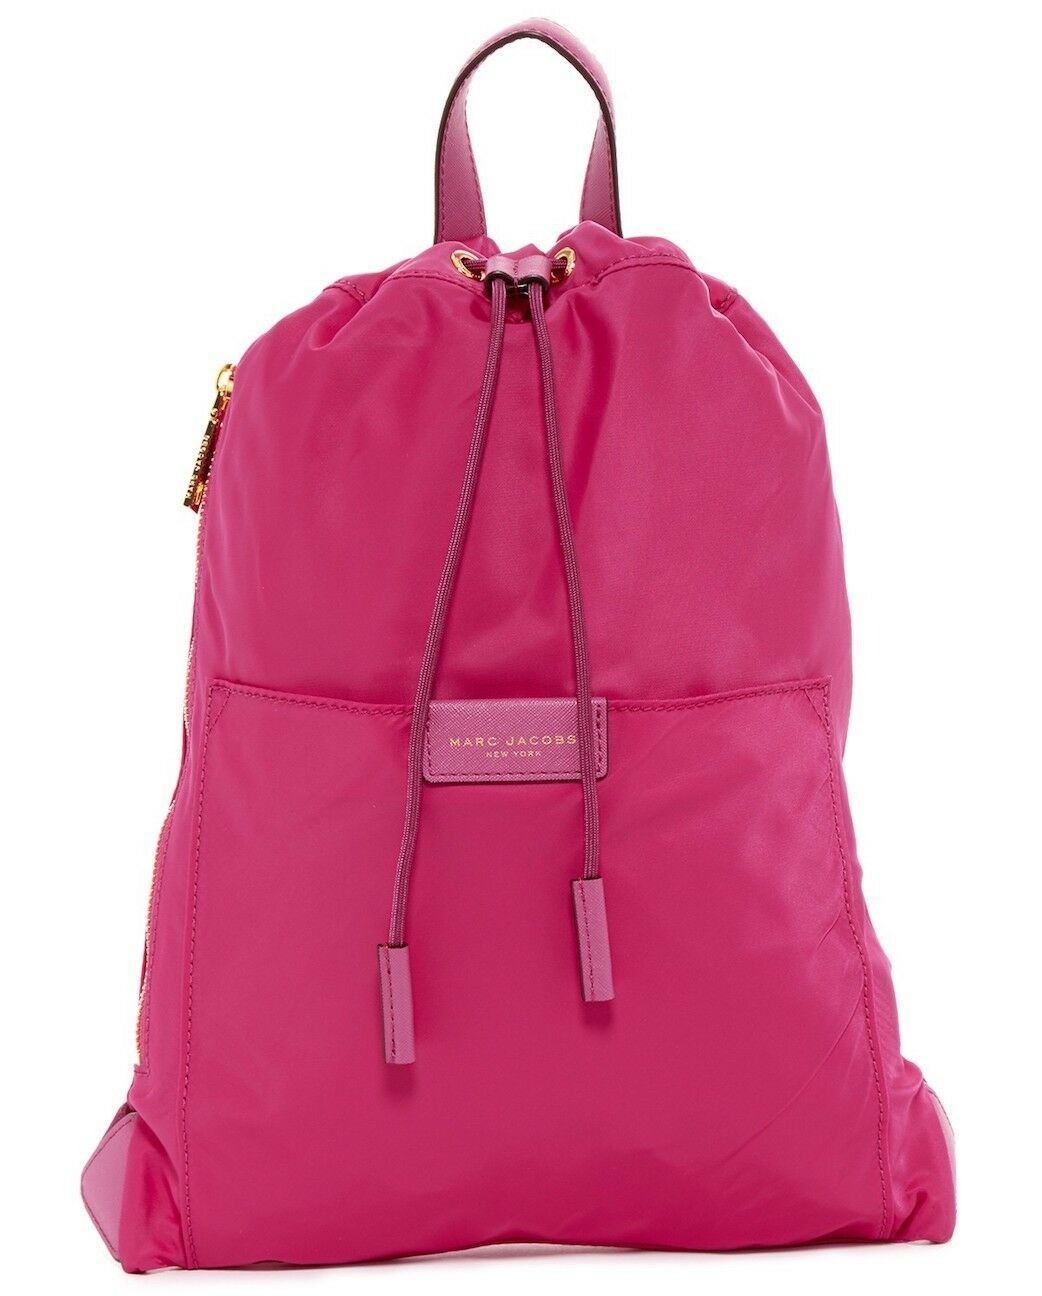 Primary image for Marc Jacobs Backpack Active Nylon Drawstring NEW